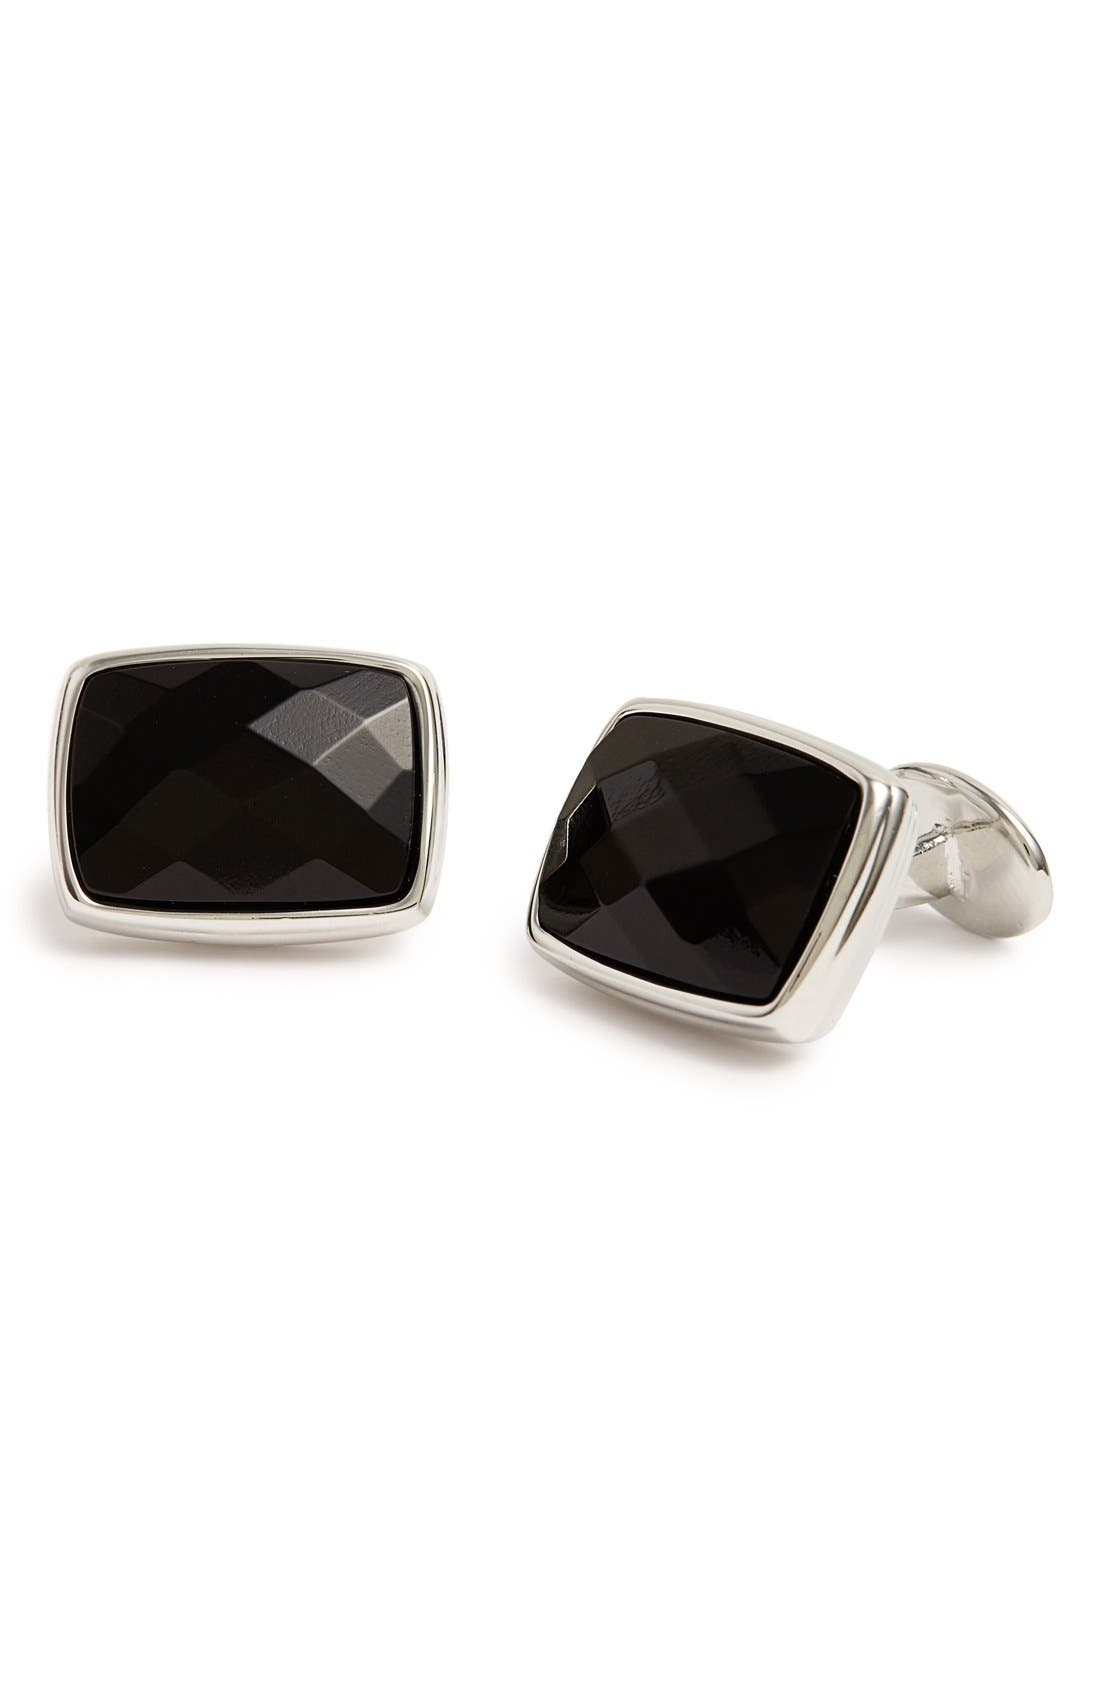 Onyx Cuff Links,                             Main thumbnail 1, color,                             004